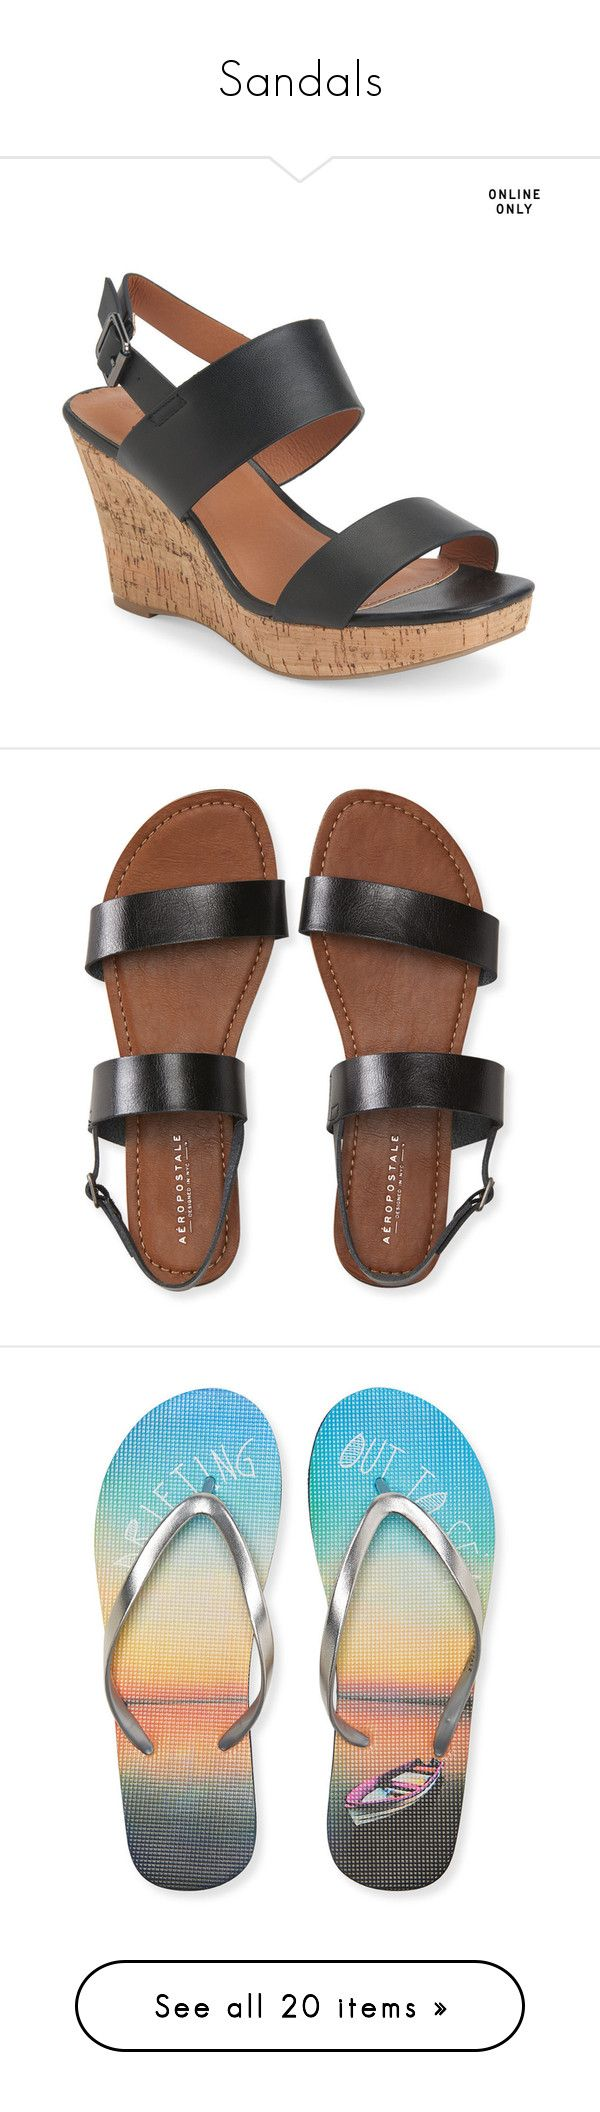 Sandals by switchfootgal on Polyvore featuring polyvore, women's fashion, shoes, sandals, black, wedge heel sandals, wedge sandals, high heel shoes, high heel sandals, buckle sandals, sling back sandals, aéropostale, sling back shoes, slingback sandals, double strap shoes, flip flops, navy, navy blue flip flops, navy sandals, navy blue sandals, aeropostale flip flops, navy flip flops, cognac, cognac sandals, cognac shoes, high heel wedge sandals, cognac high heel sandals, saddle leather…